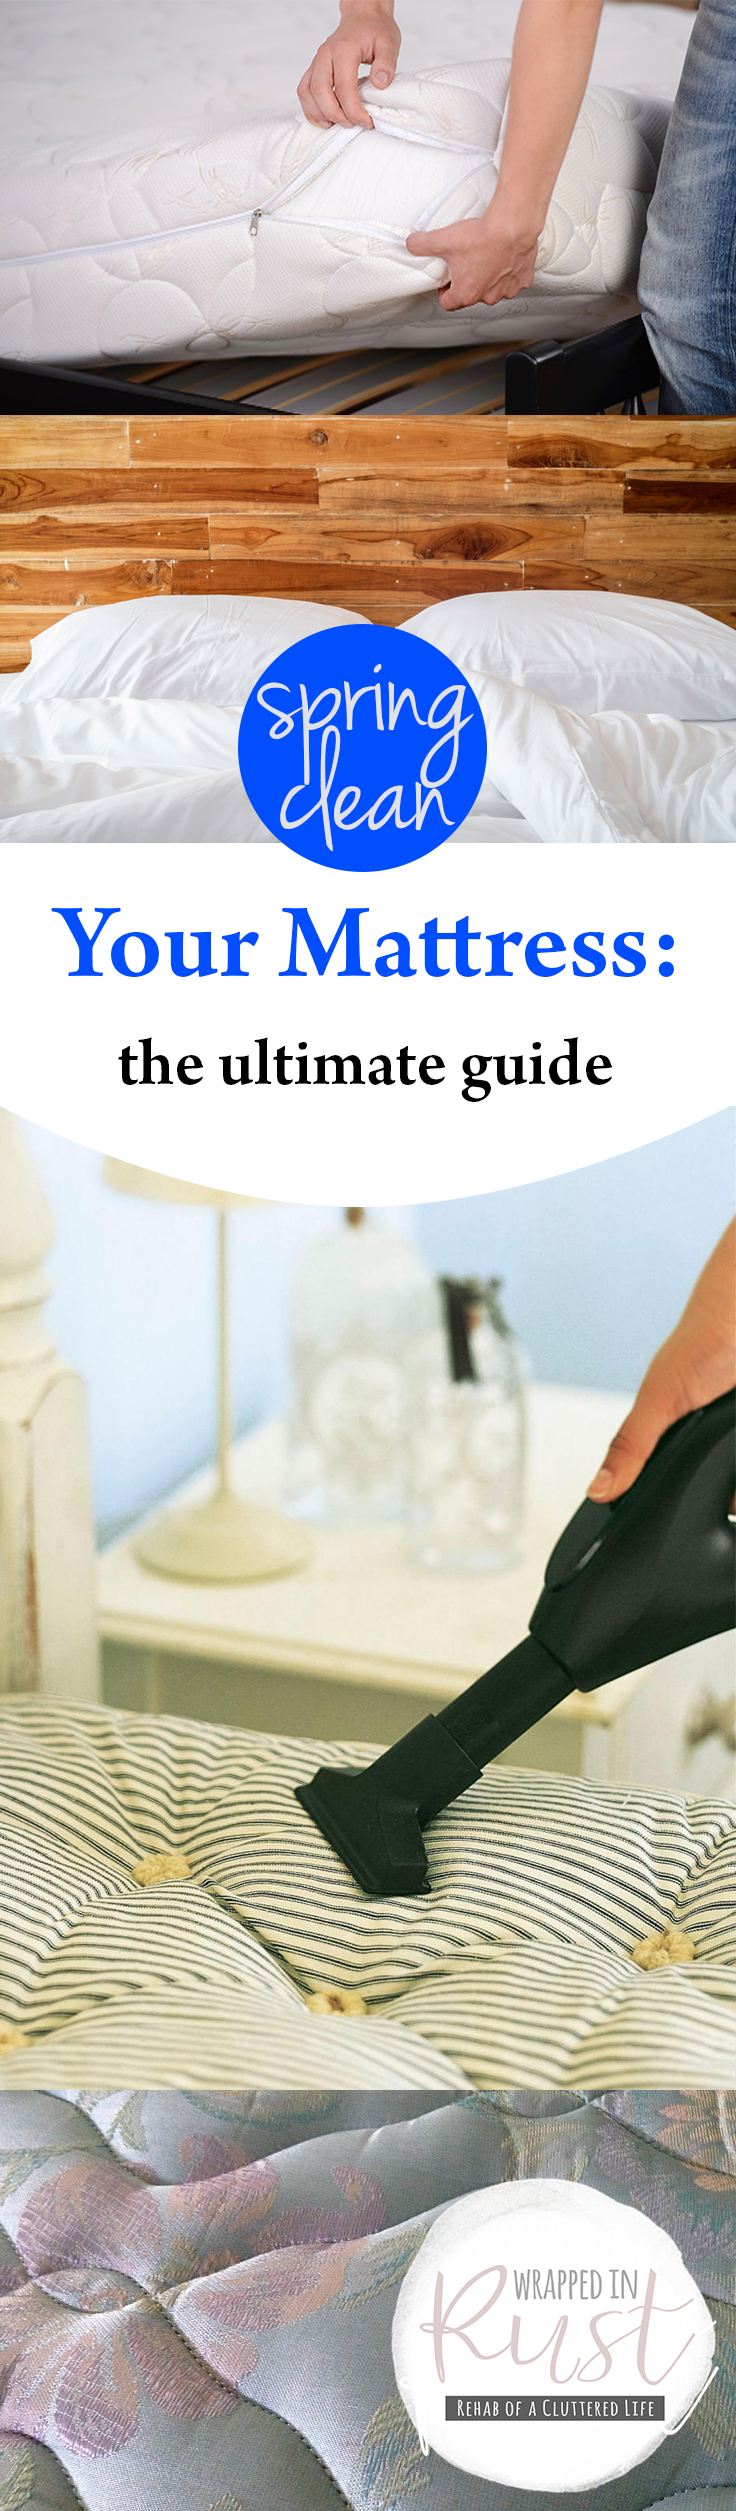 Natural Ways To Clean A Mattress